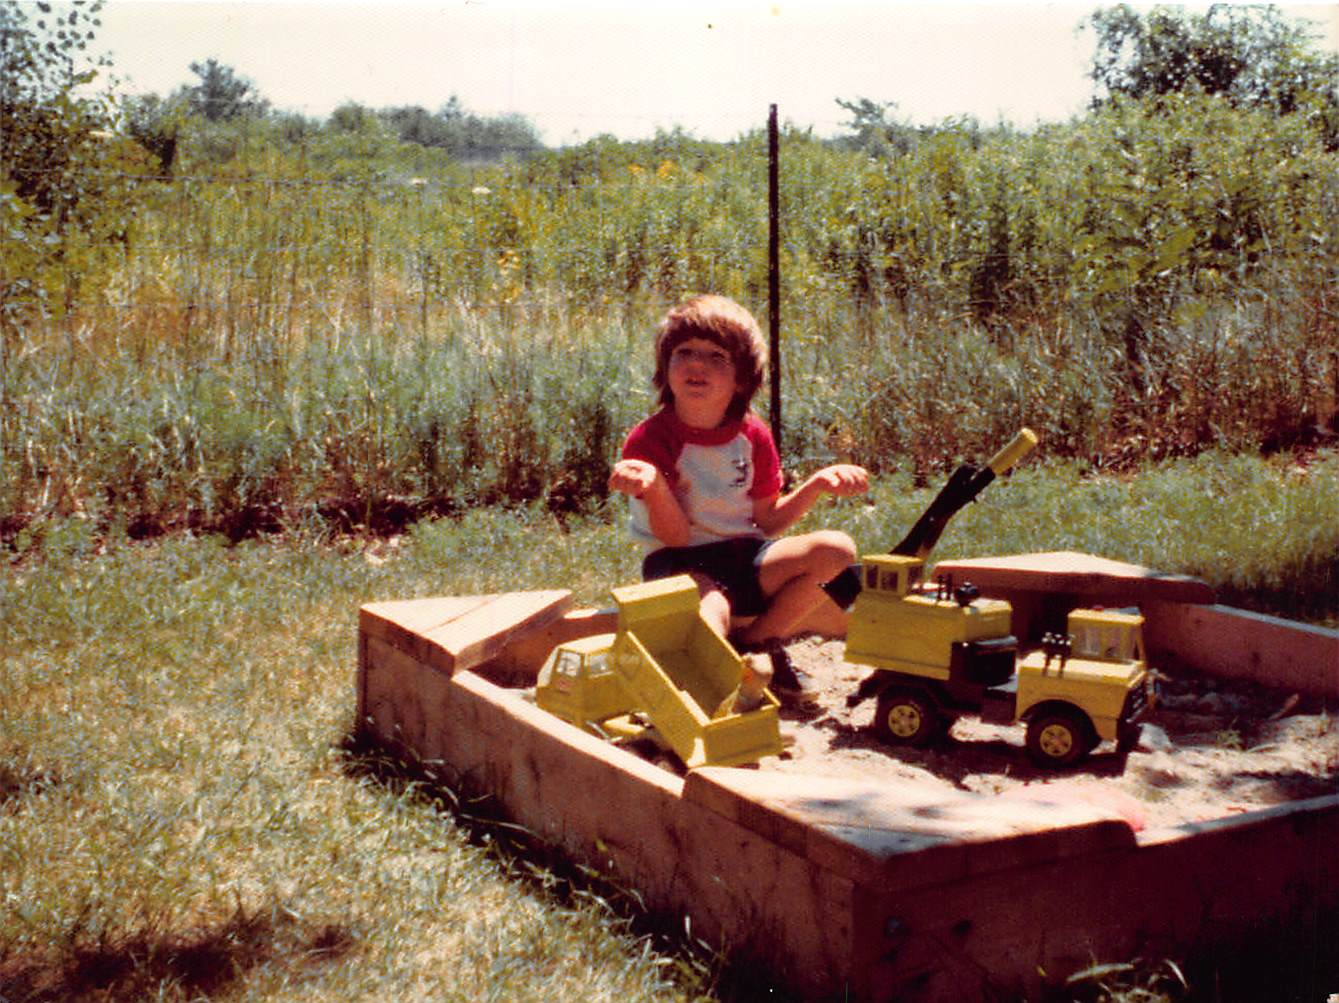 Early Adventures in The Sandbox